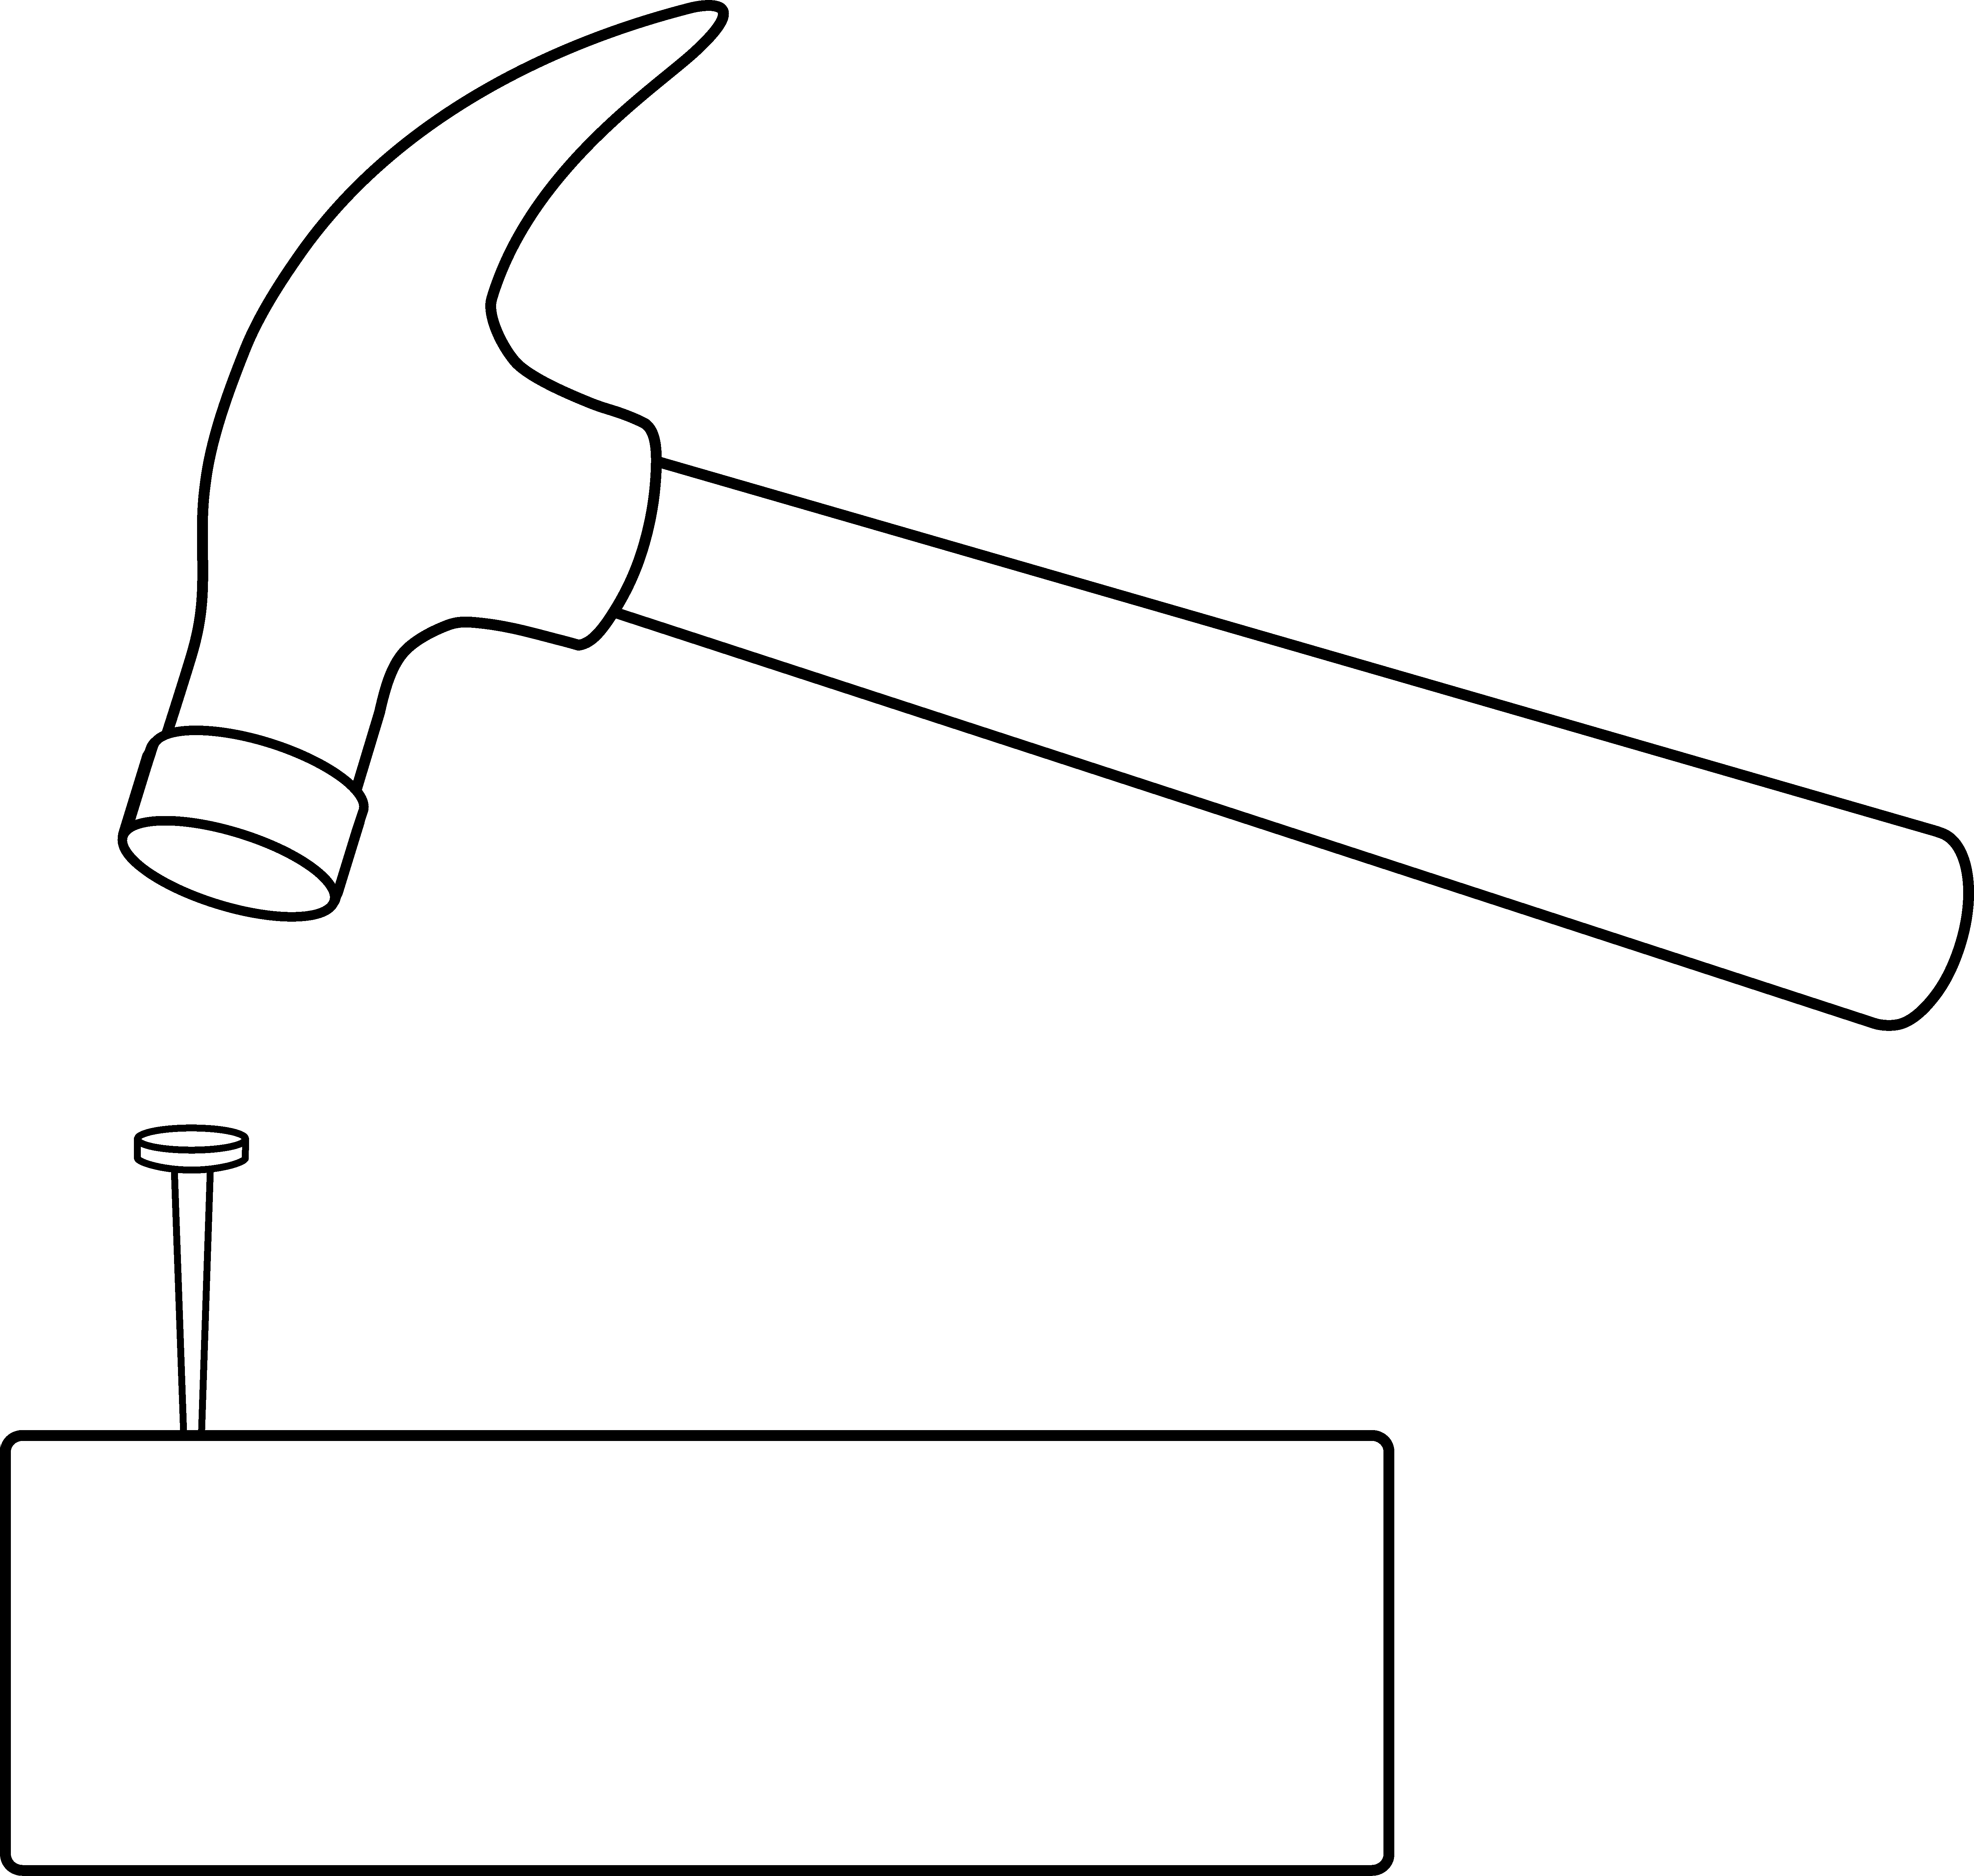 House hammer clipart banner Free clipart hammer nail house banner